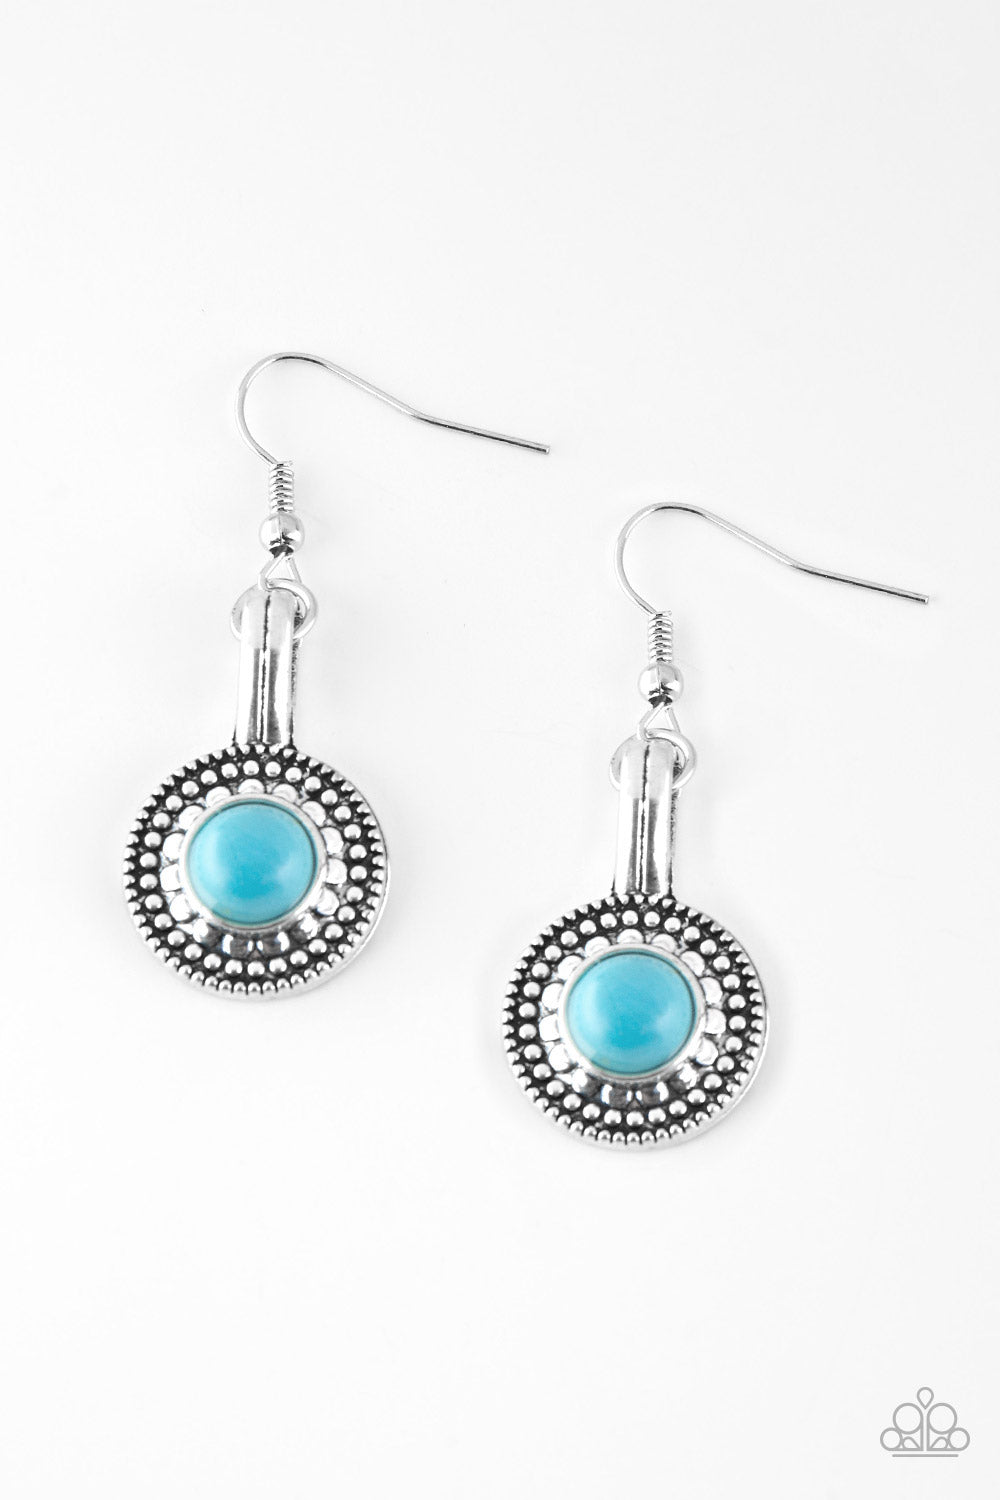 Paparazzi Simply Stagecoach Blue Earrings